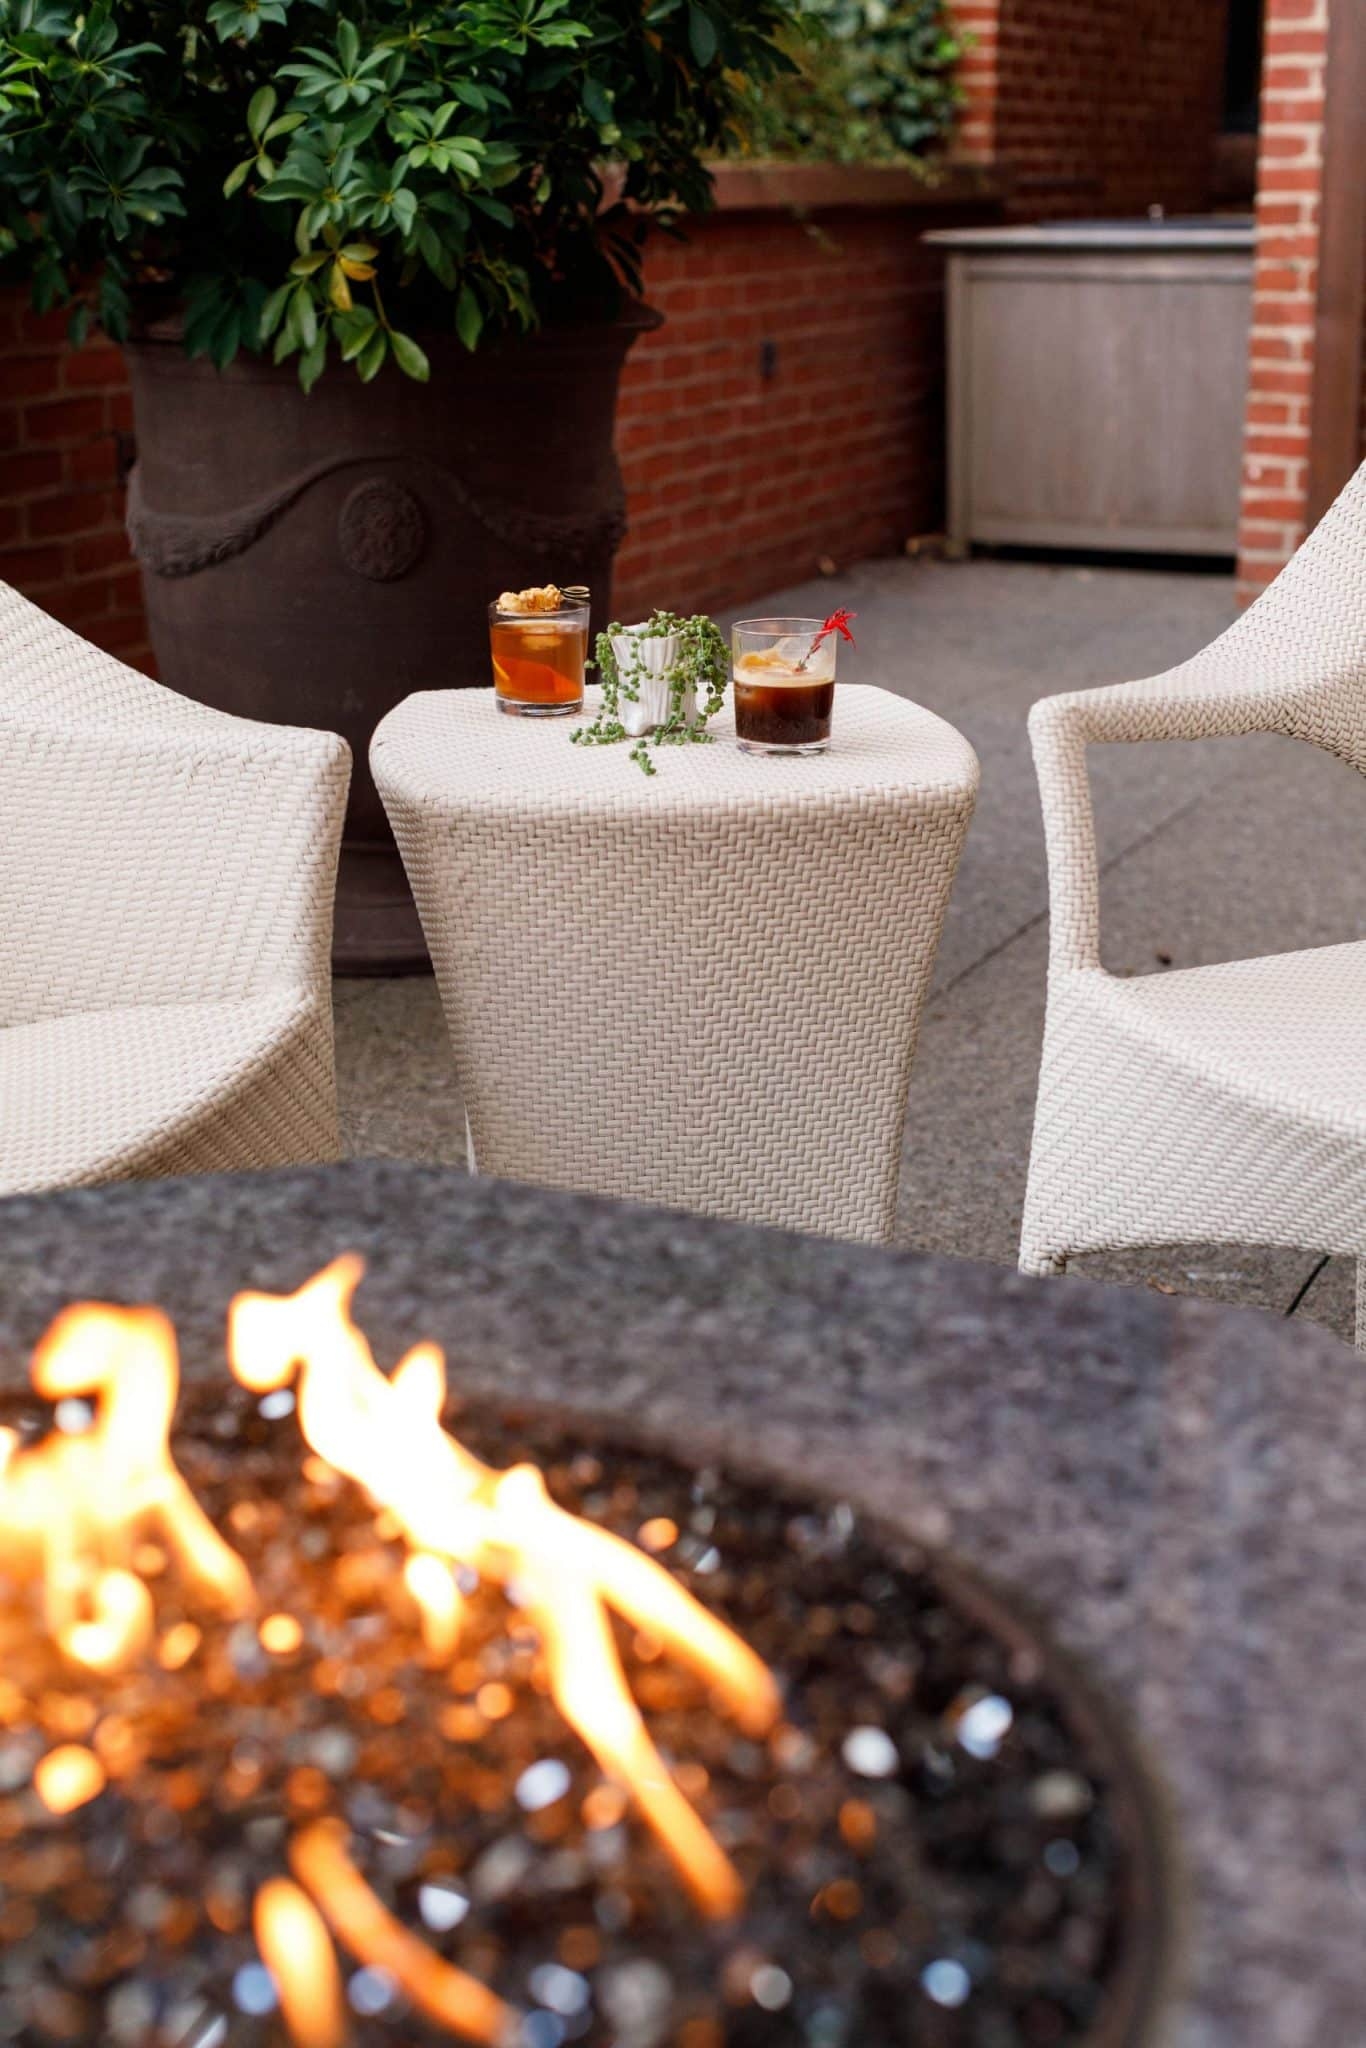 Two drinks on a table in front of a fire pit